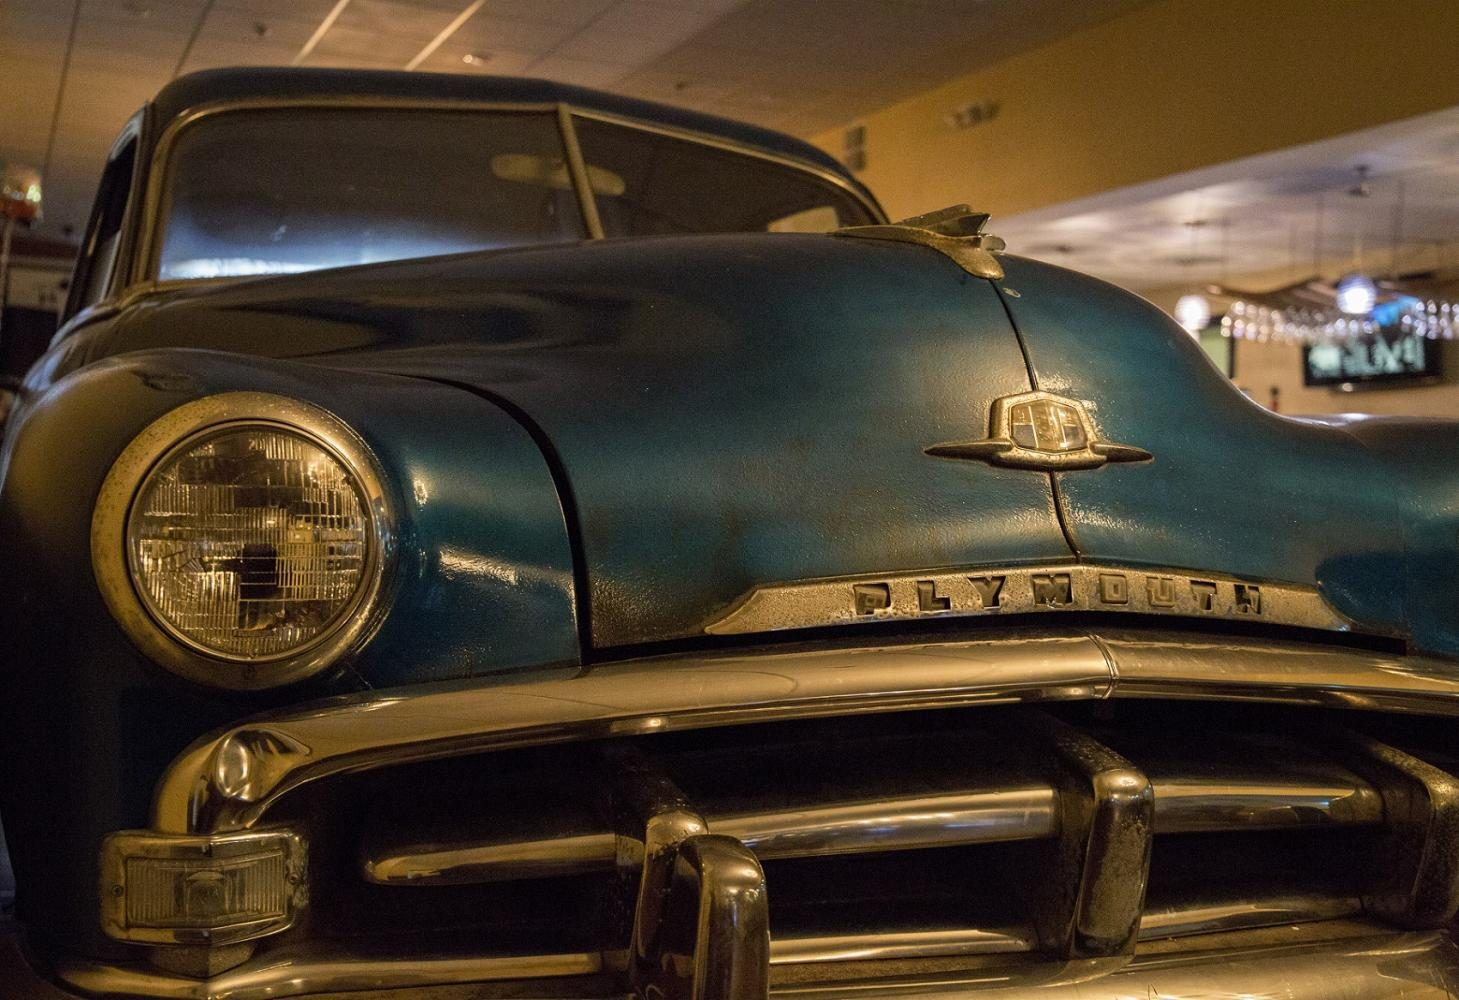 Parked+in+the+restaurant+is+a+1951+Plymouth